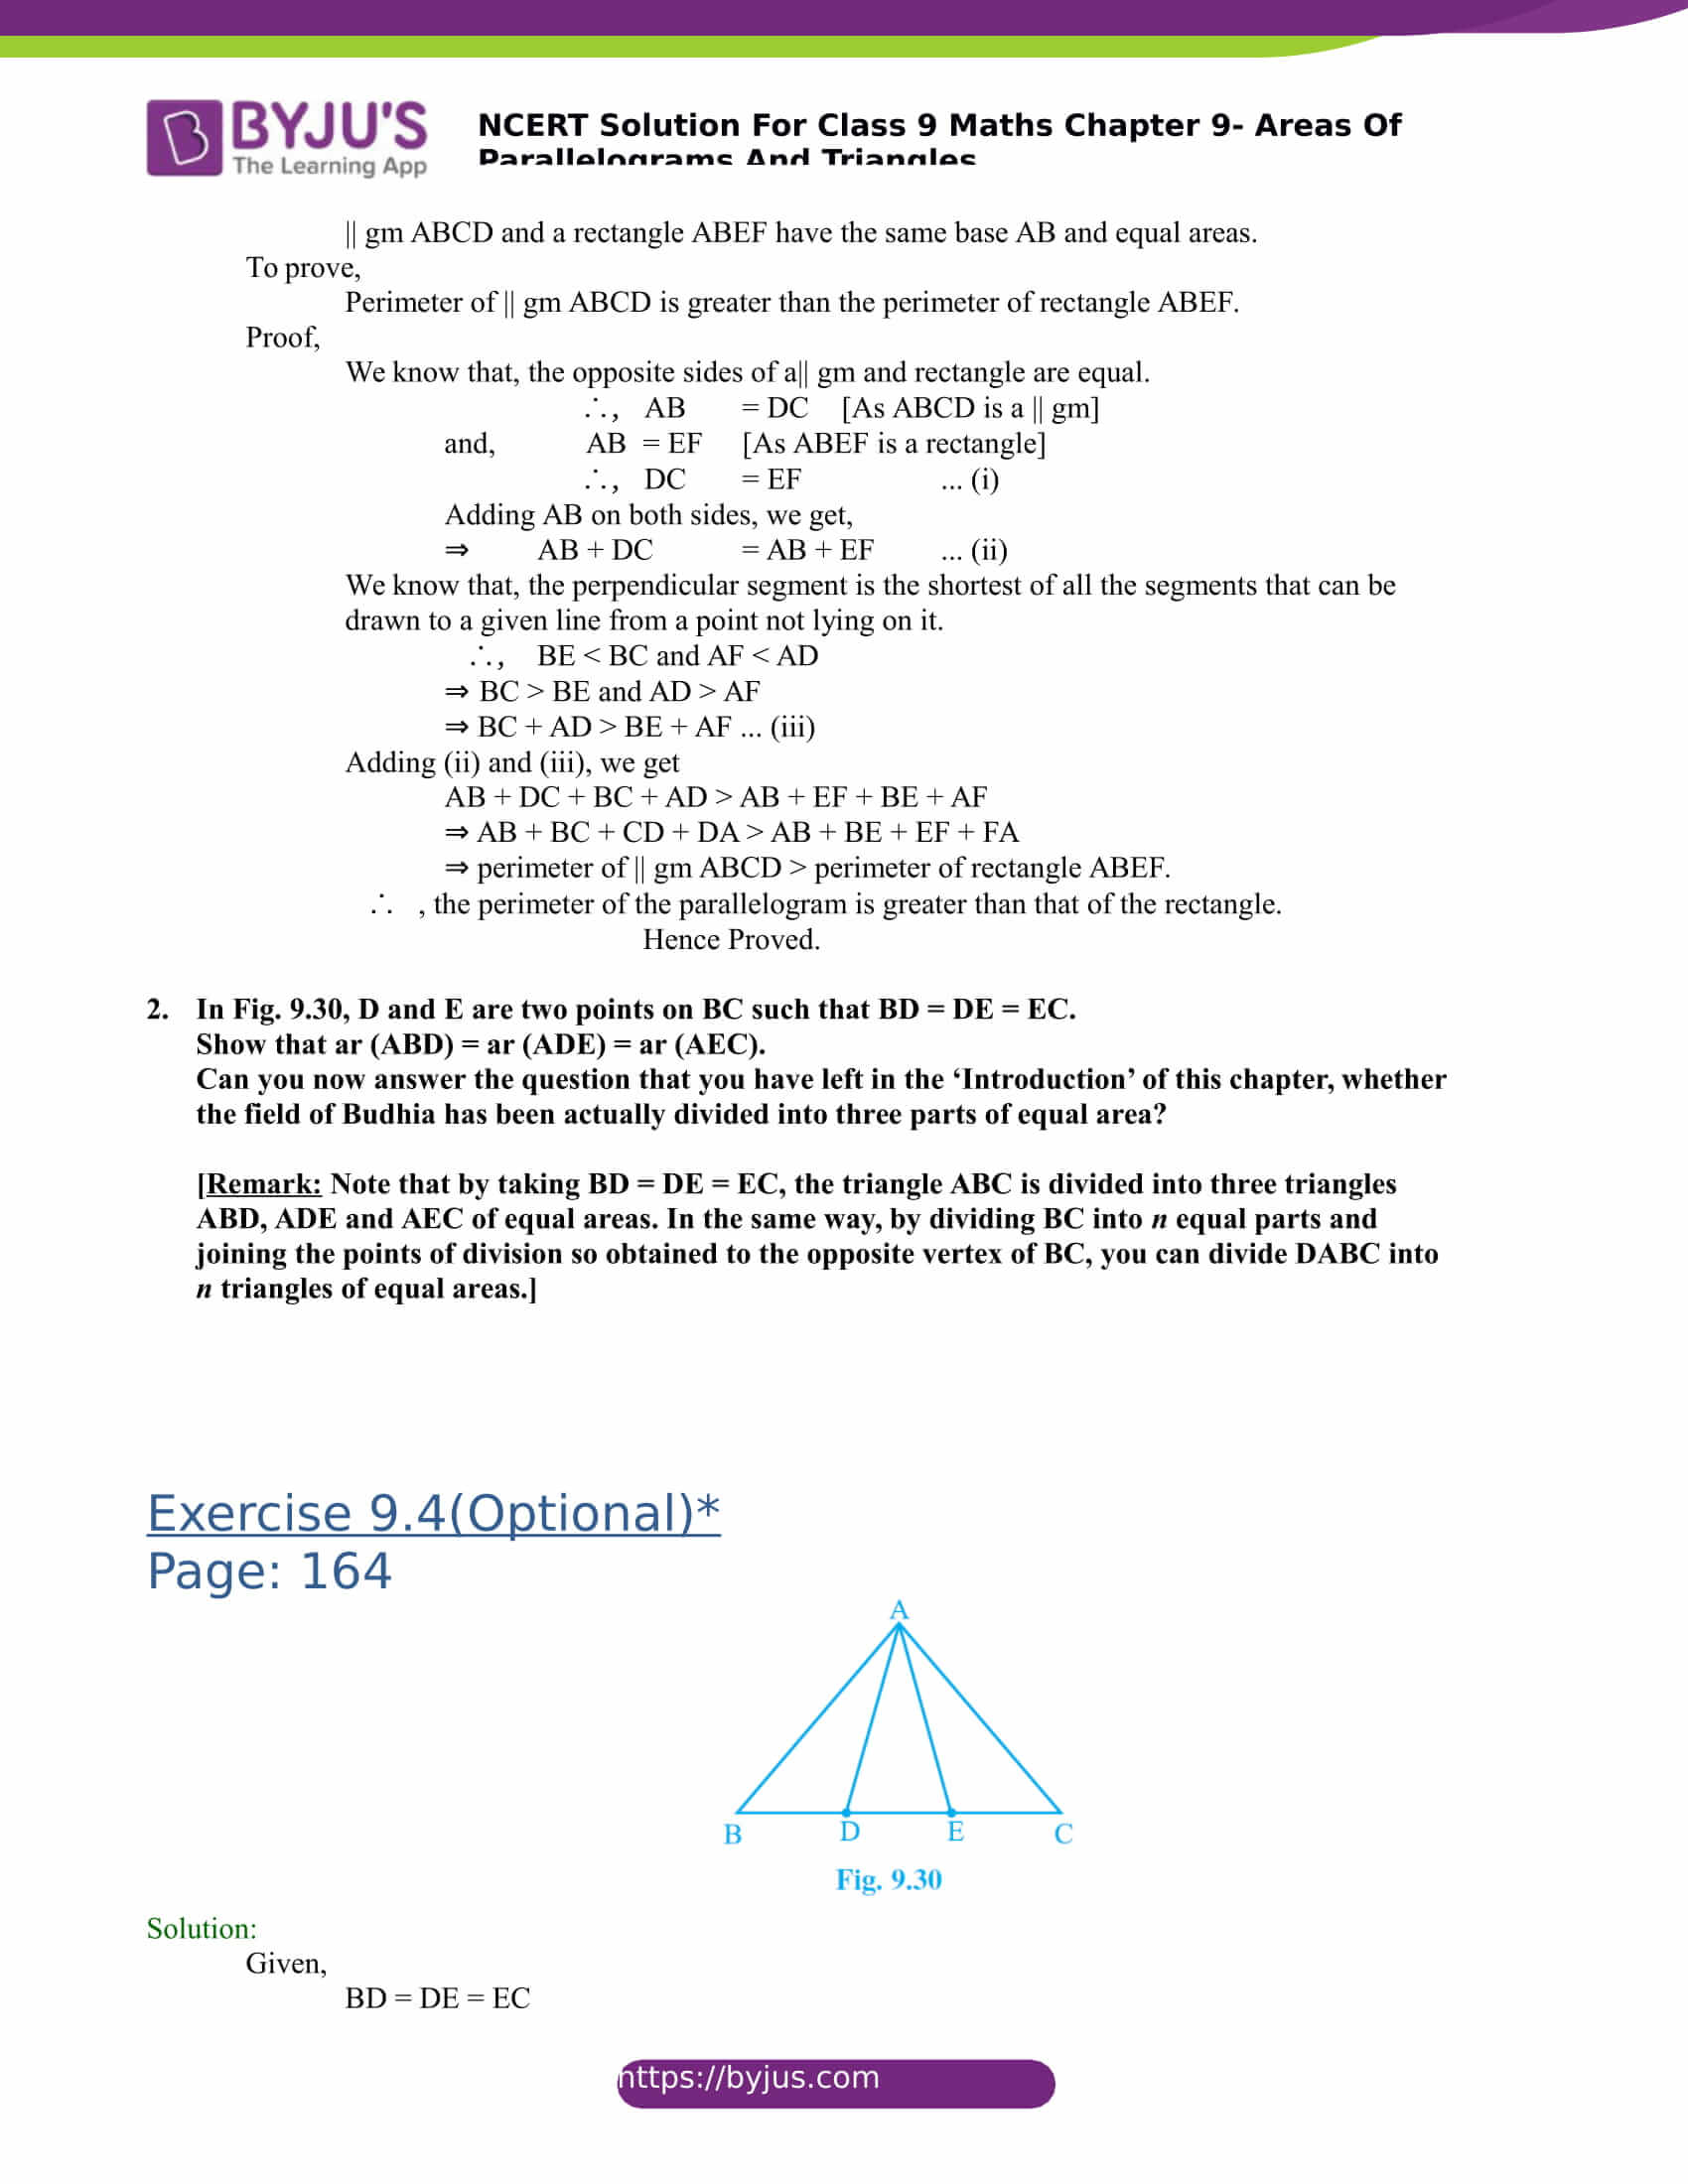 NCERT Solutions for class 9 Maths Chapter 9 Areas of parallelograms and triangles Part 20